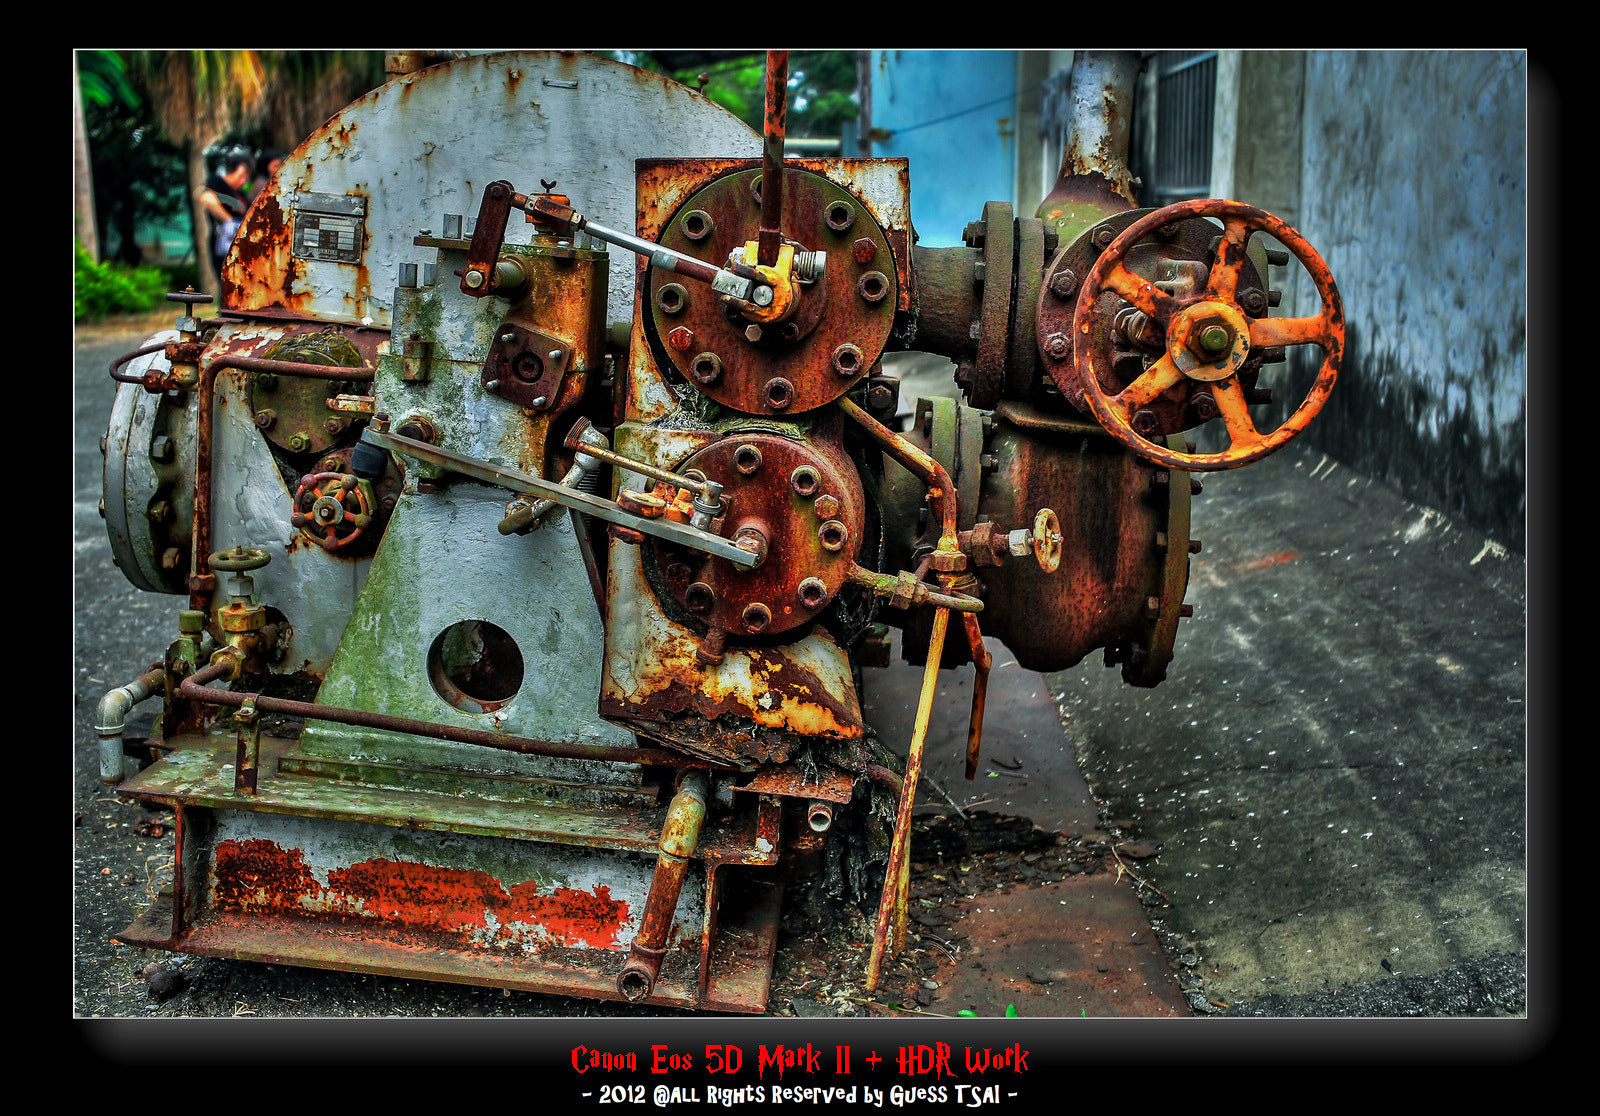 Photograph Old Machine by Guess Tsai on 500px